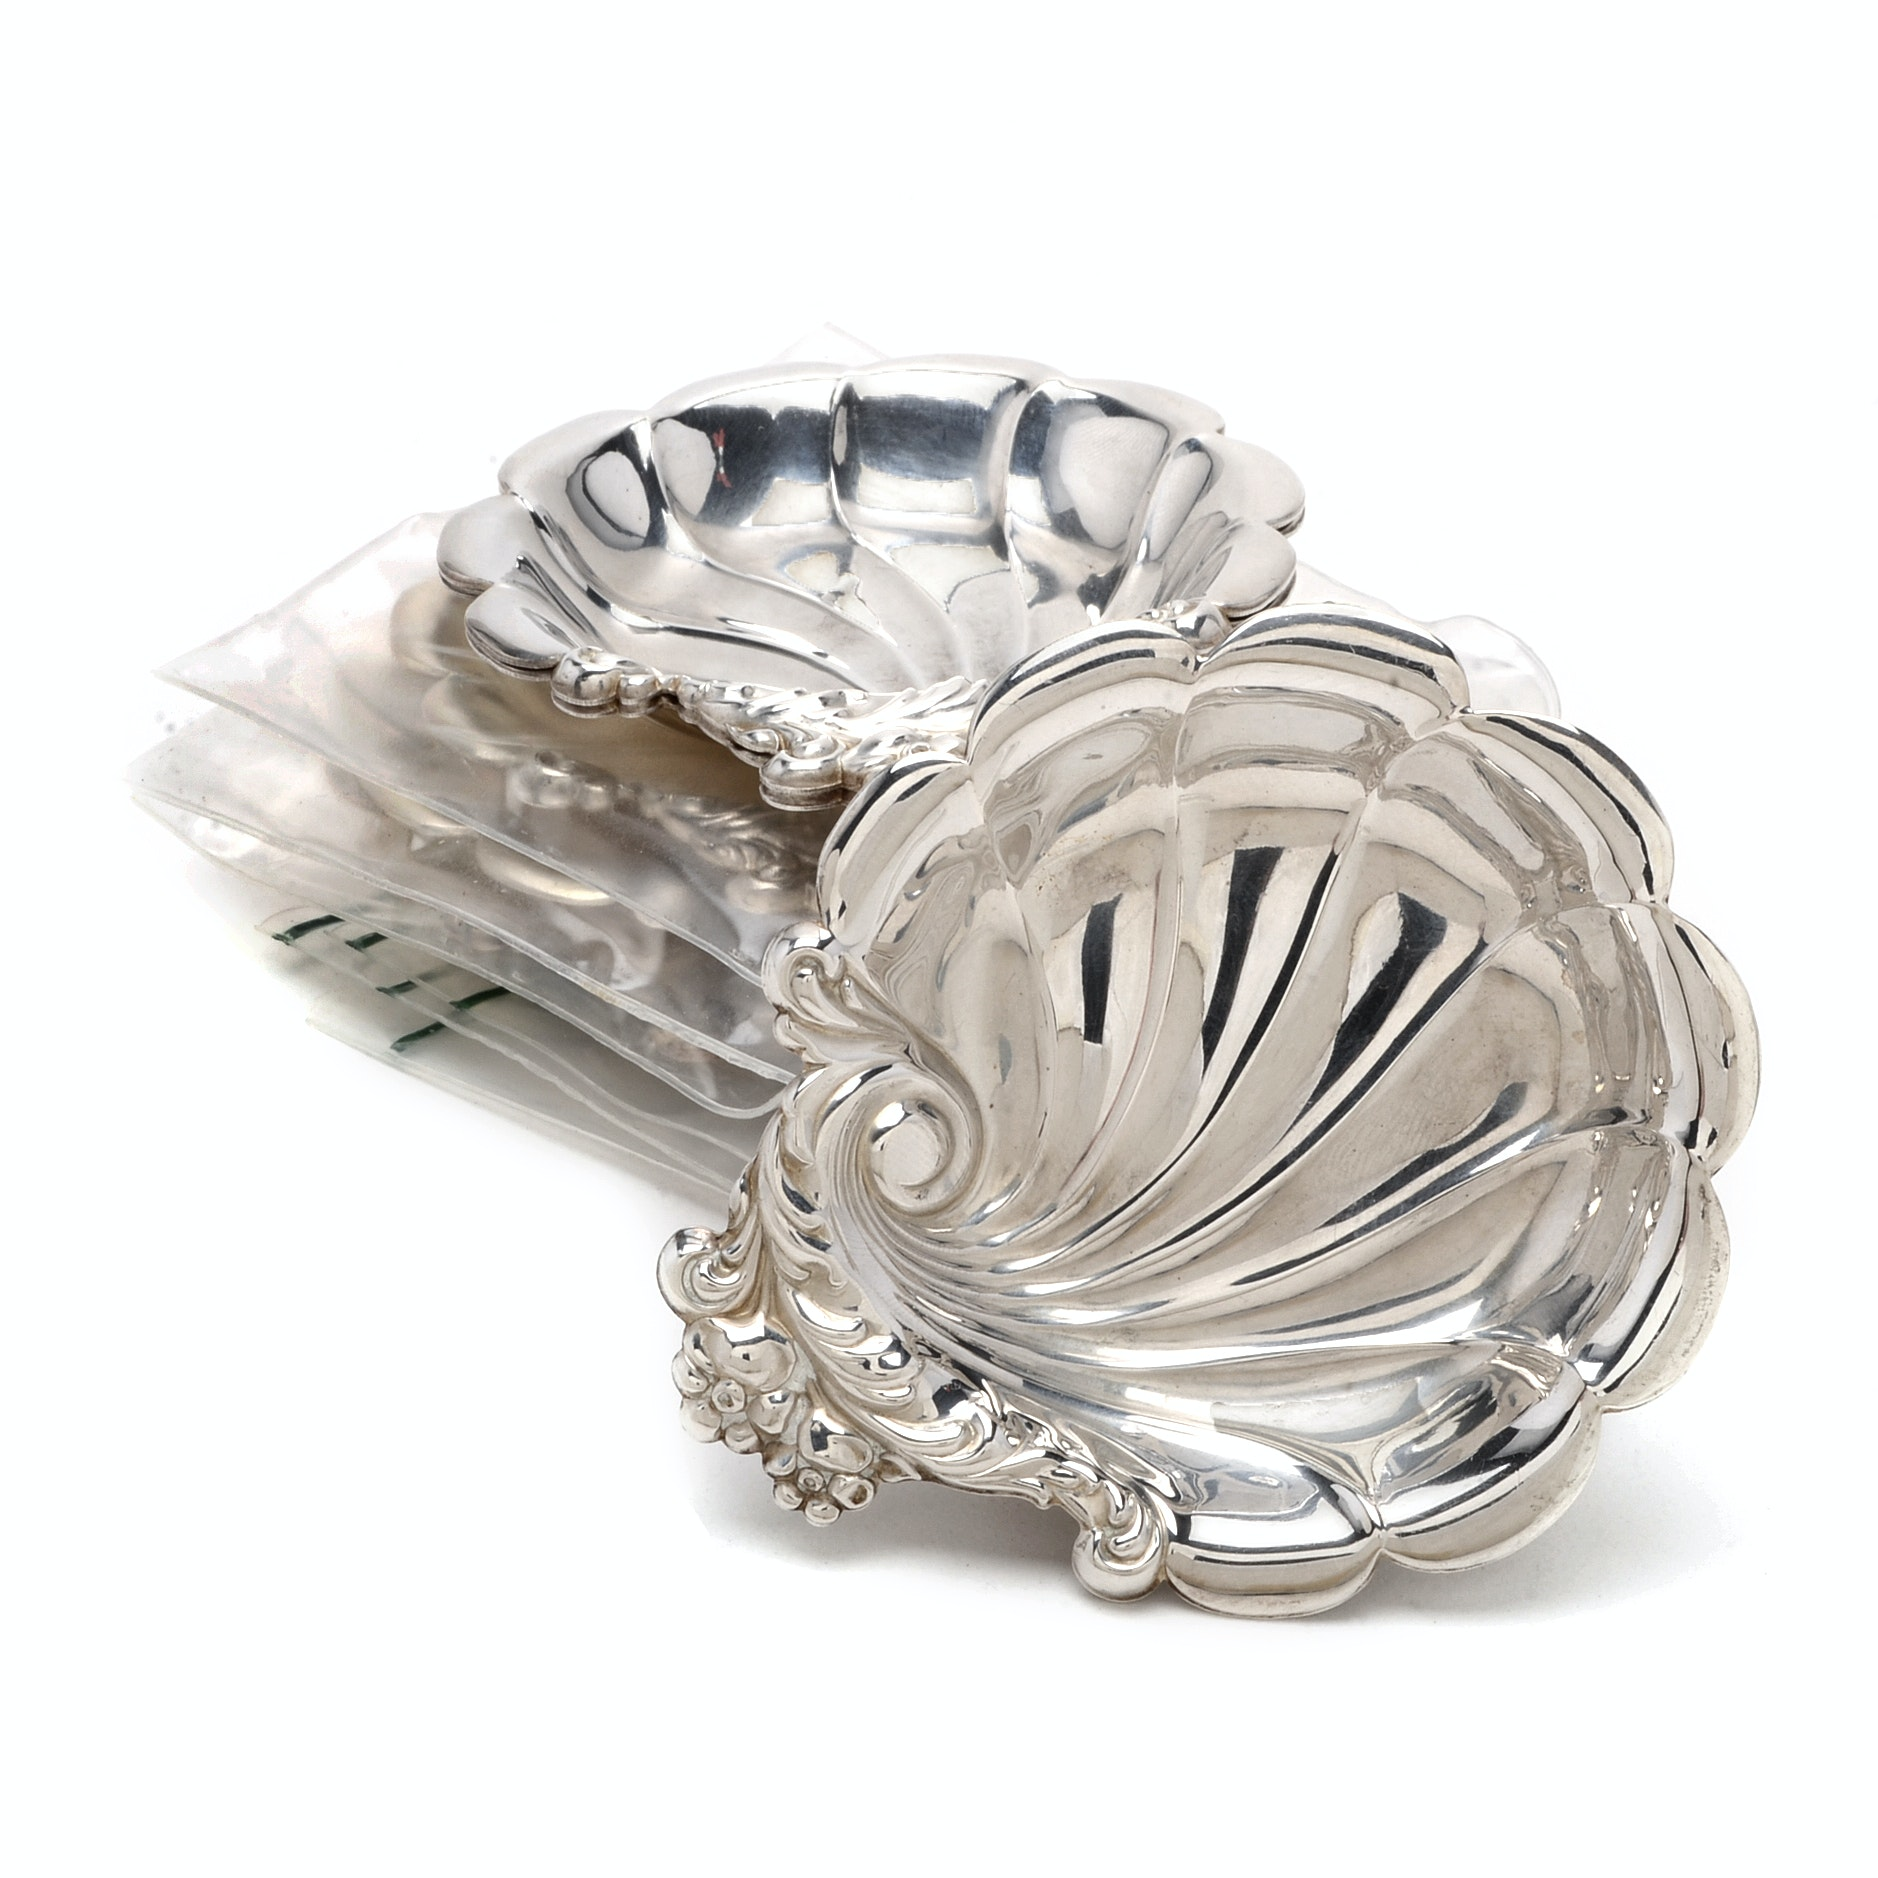 Six Lunt Silversmiths Sterling Silver Nut Dishes